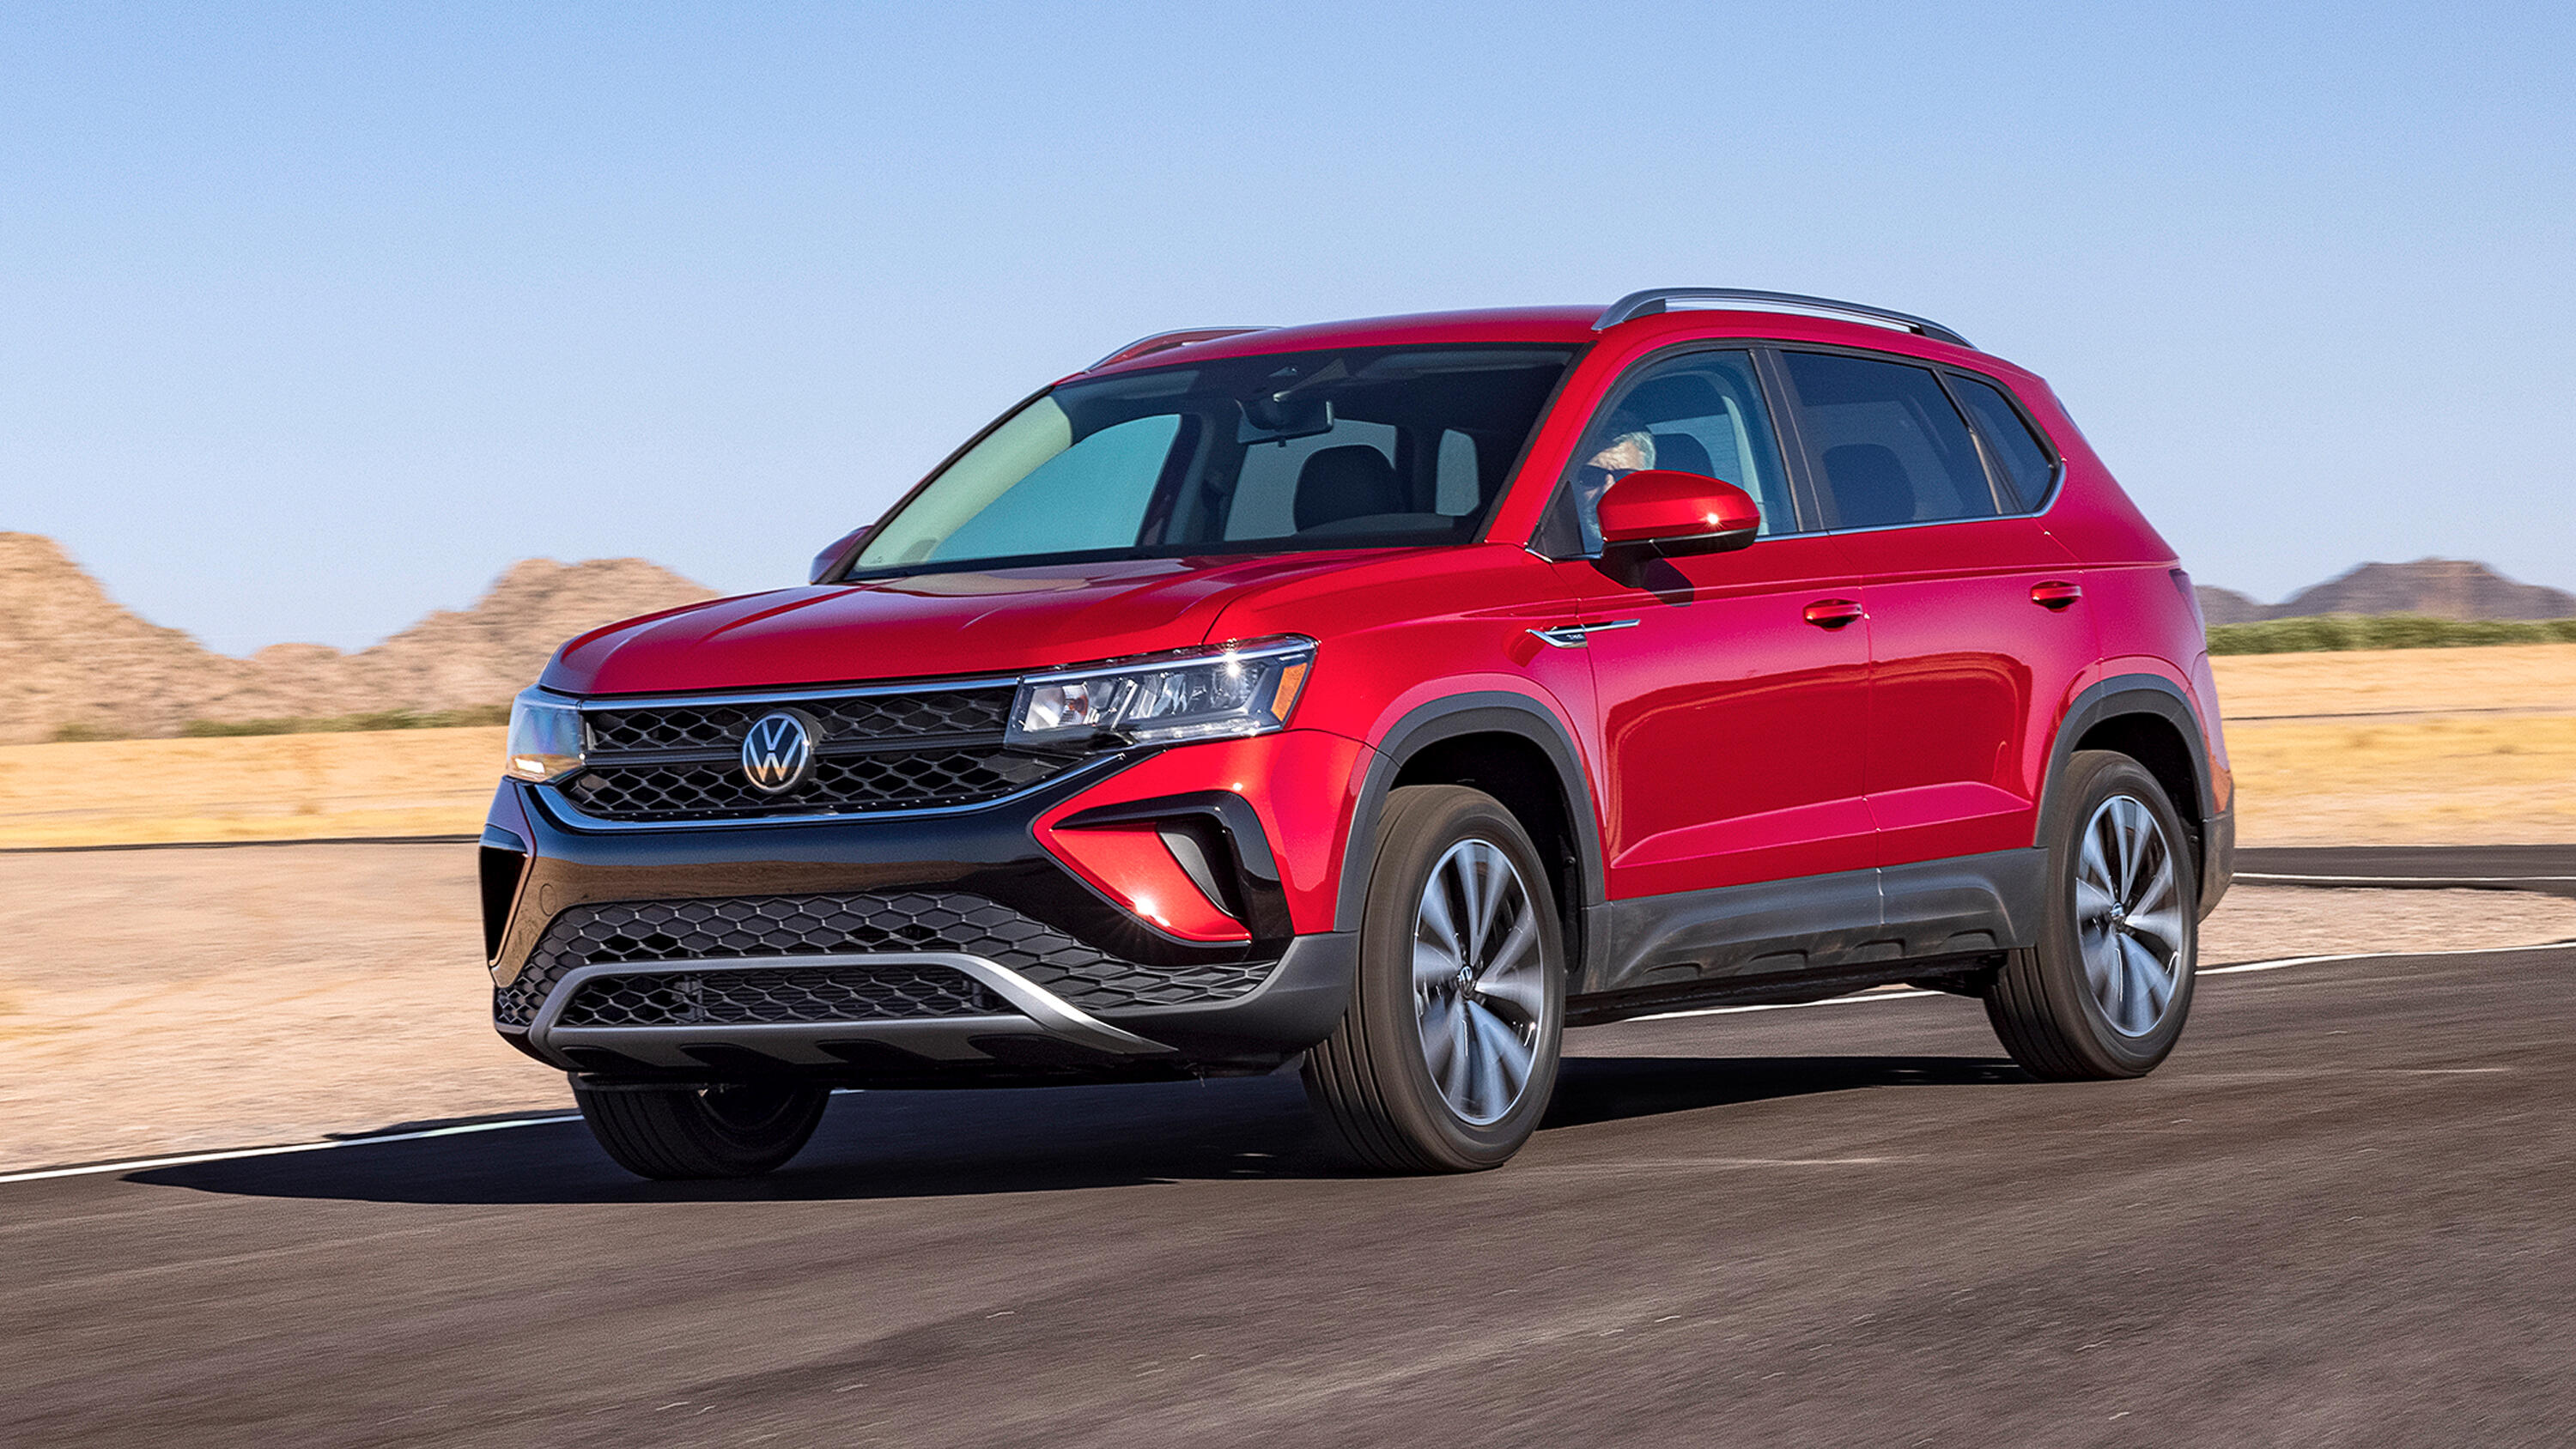 Video: 2022 Volkswagen Taos: Small but mighty